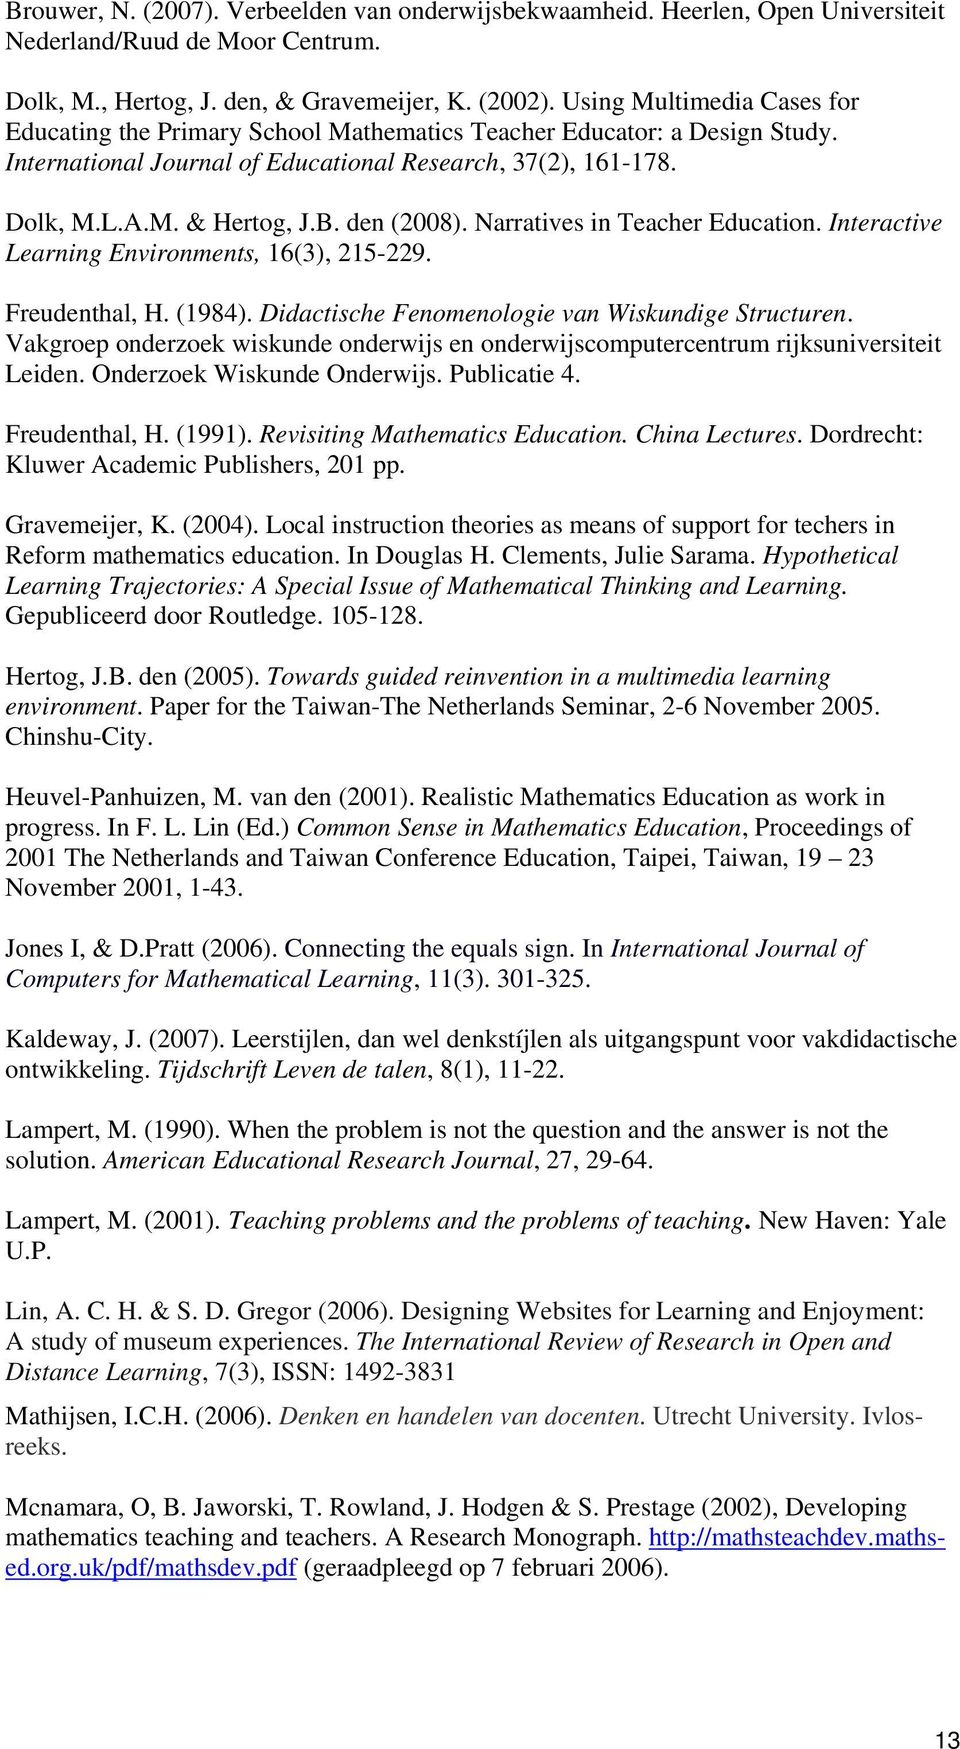 den (2008). Narratives in Teacher Education. Interactive Learning Environments, 16(3), 215-229. Freudenthal, H. (1984). Didactische Fenomenologie van Wiskundige Structuren.